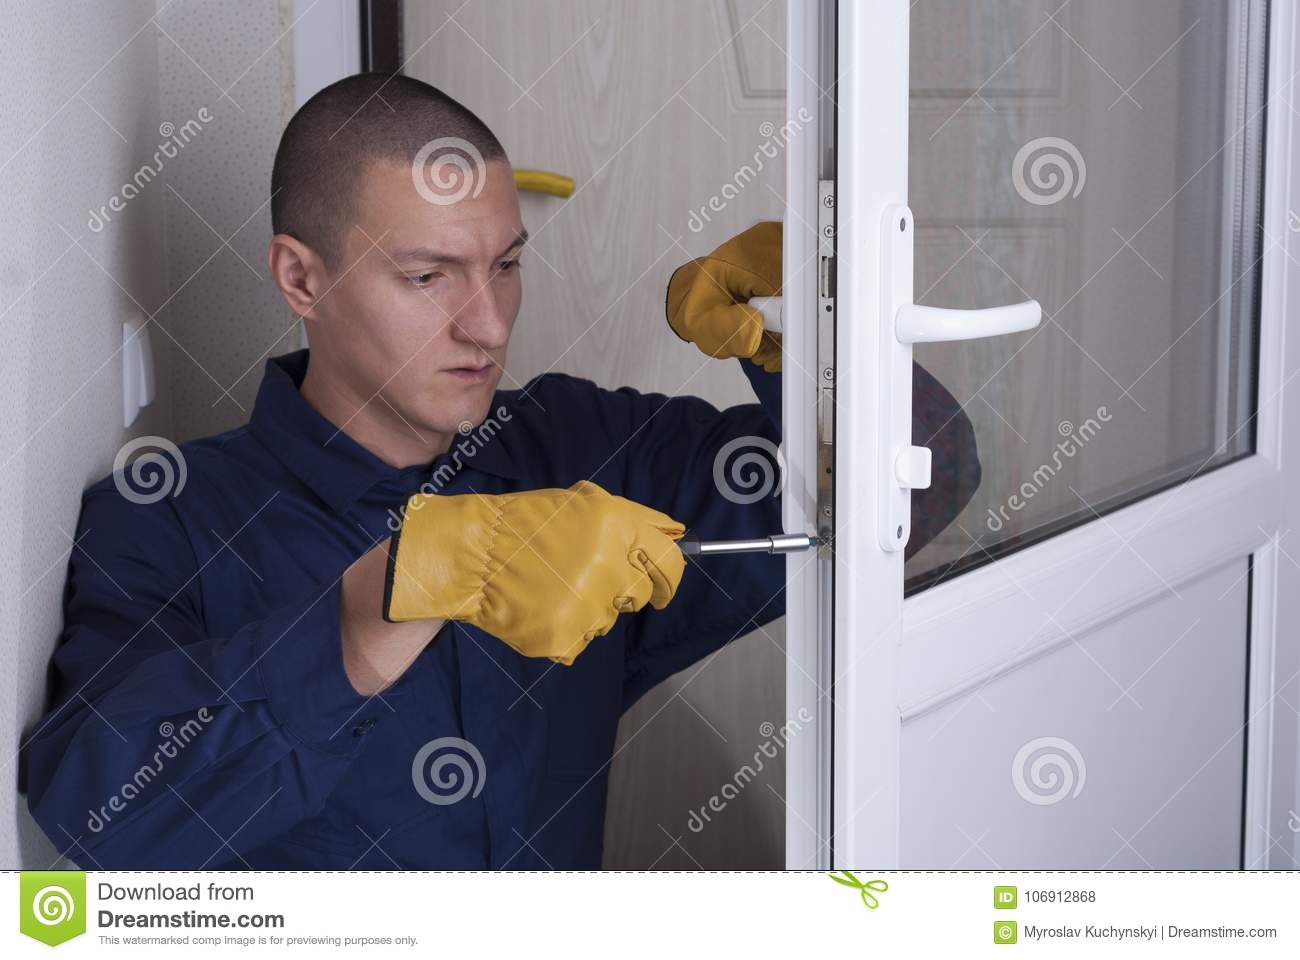 Need a master for installing locks, where to find 18